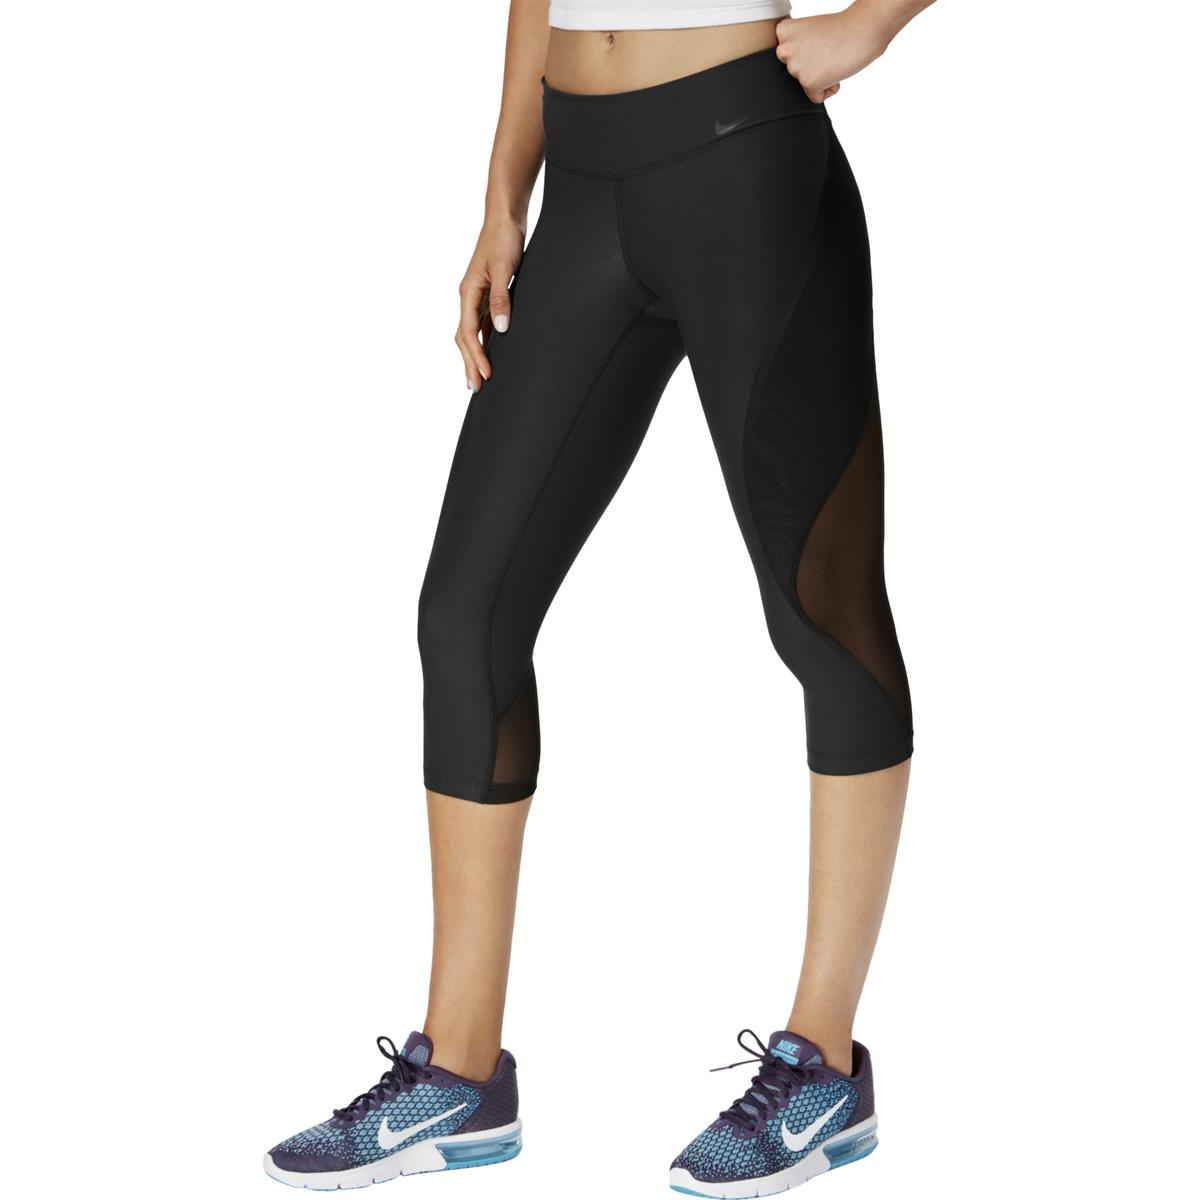 3a912c3e97703 Details about Nike Womens Black Yoga Fitness Running Athletic Pants L BHFO  0312